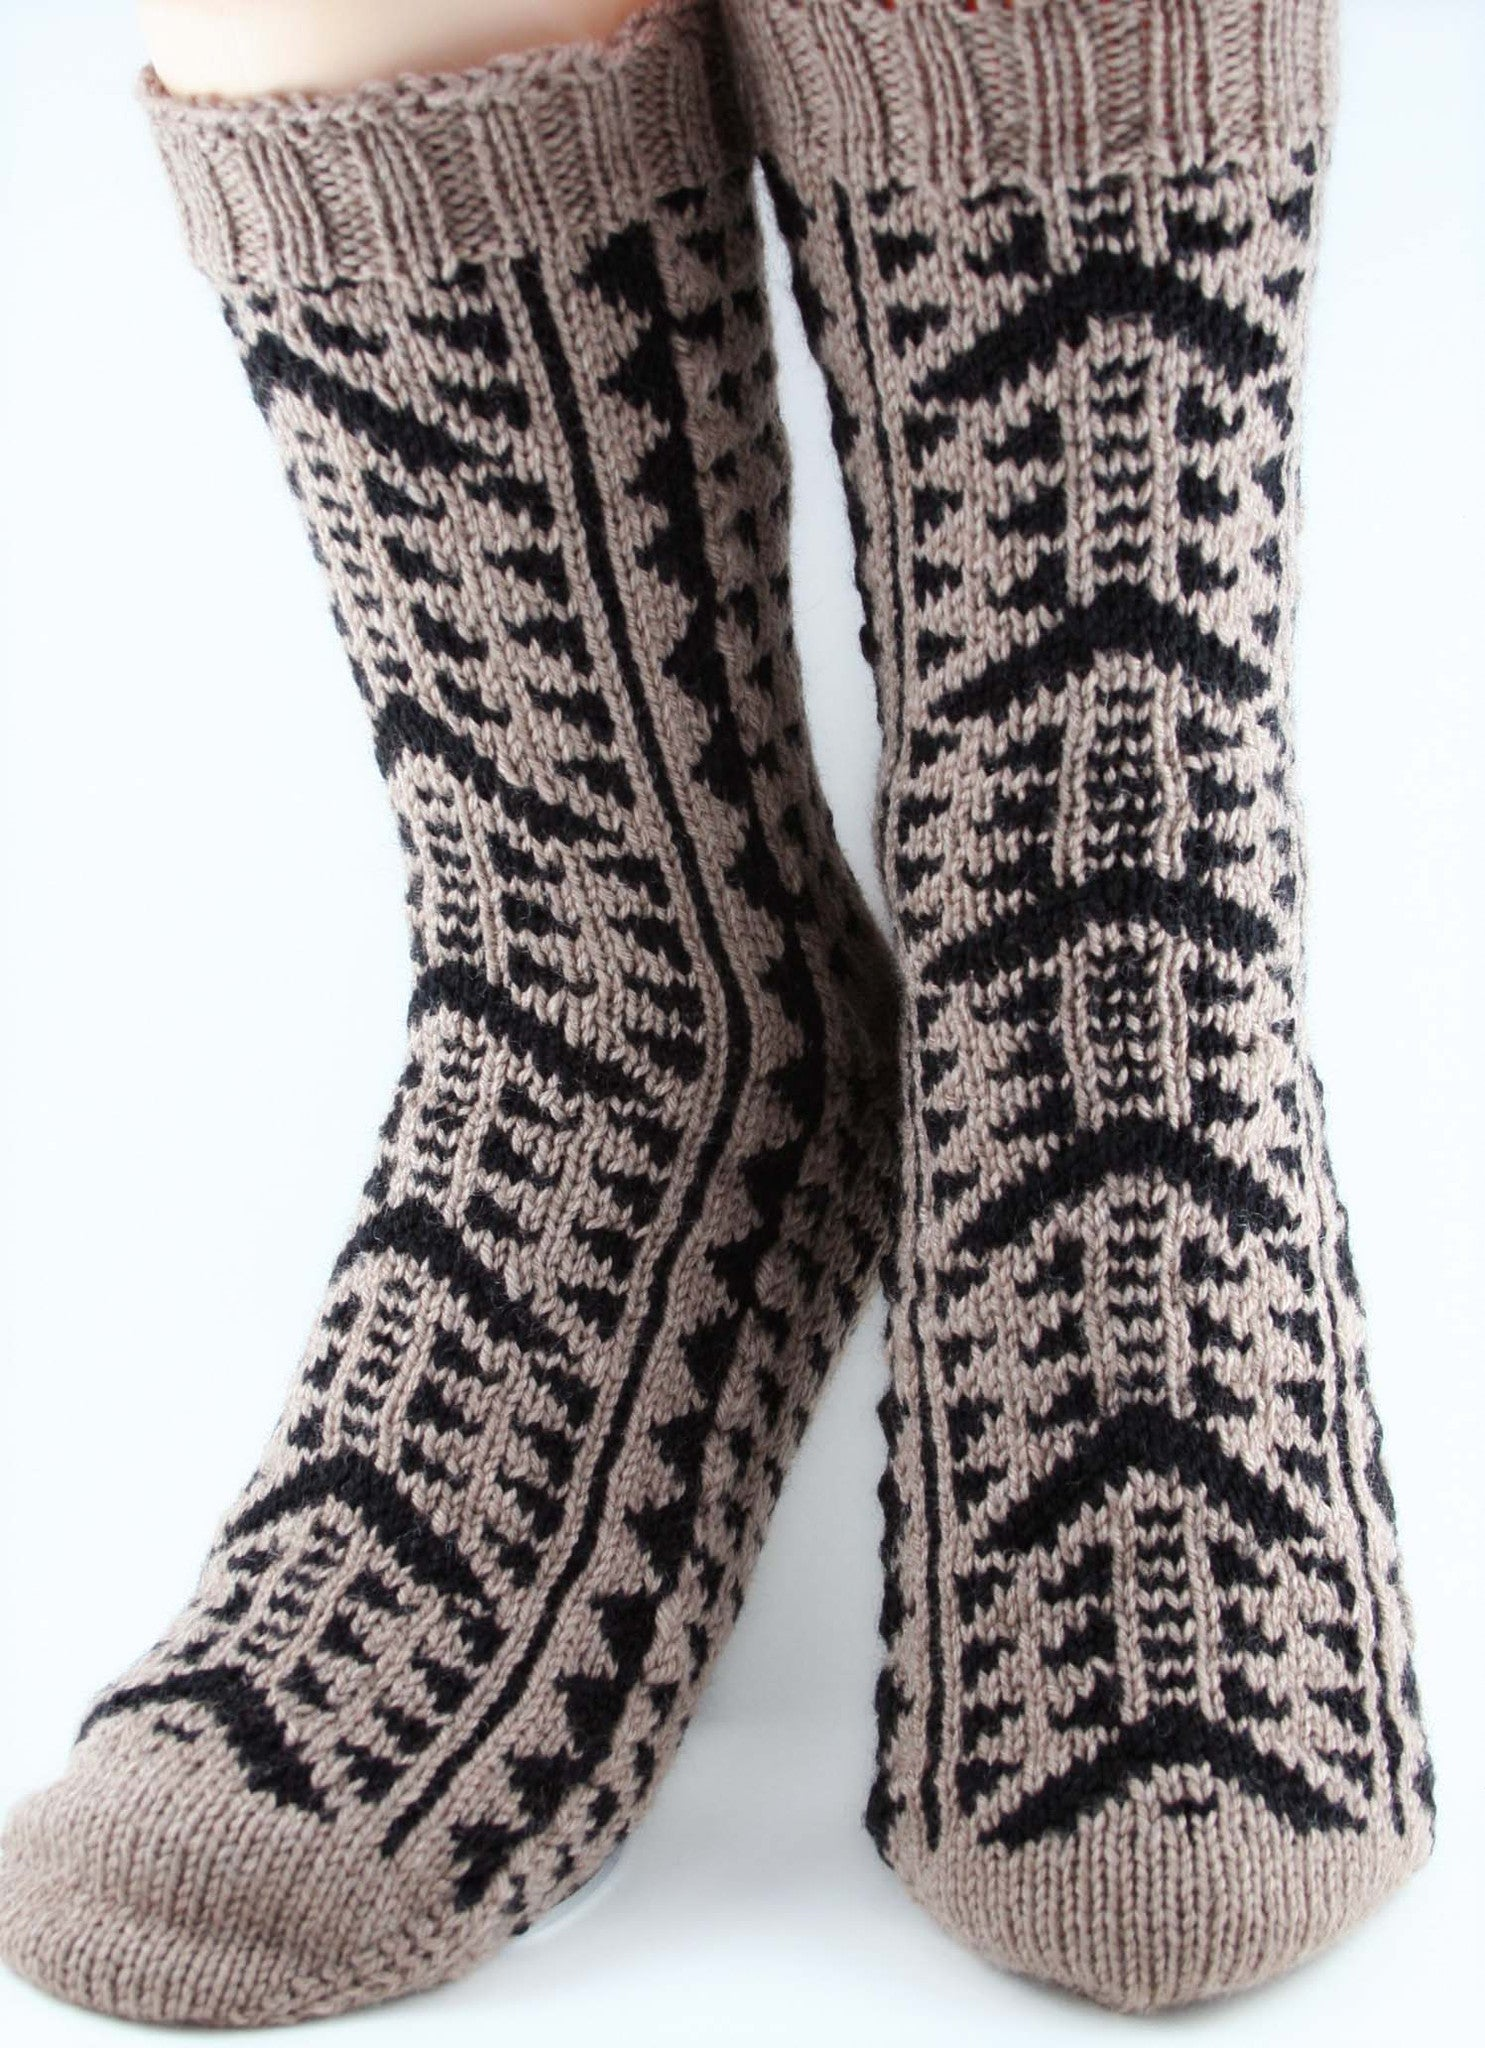 KNITTING PATTERN for Kane Socks - Charted Colorwork Sock pattern ...